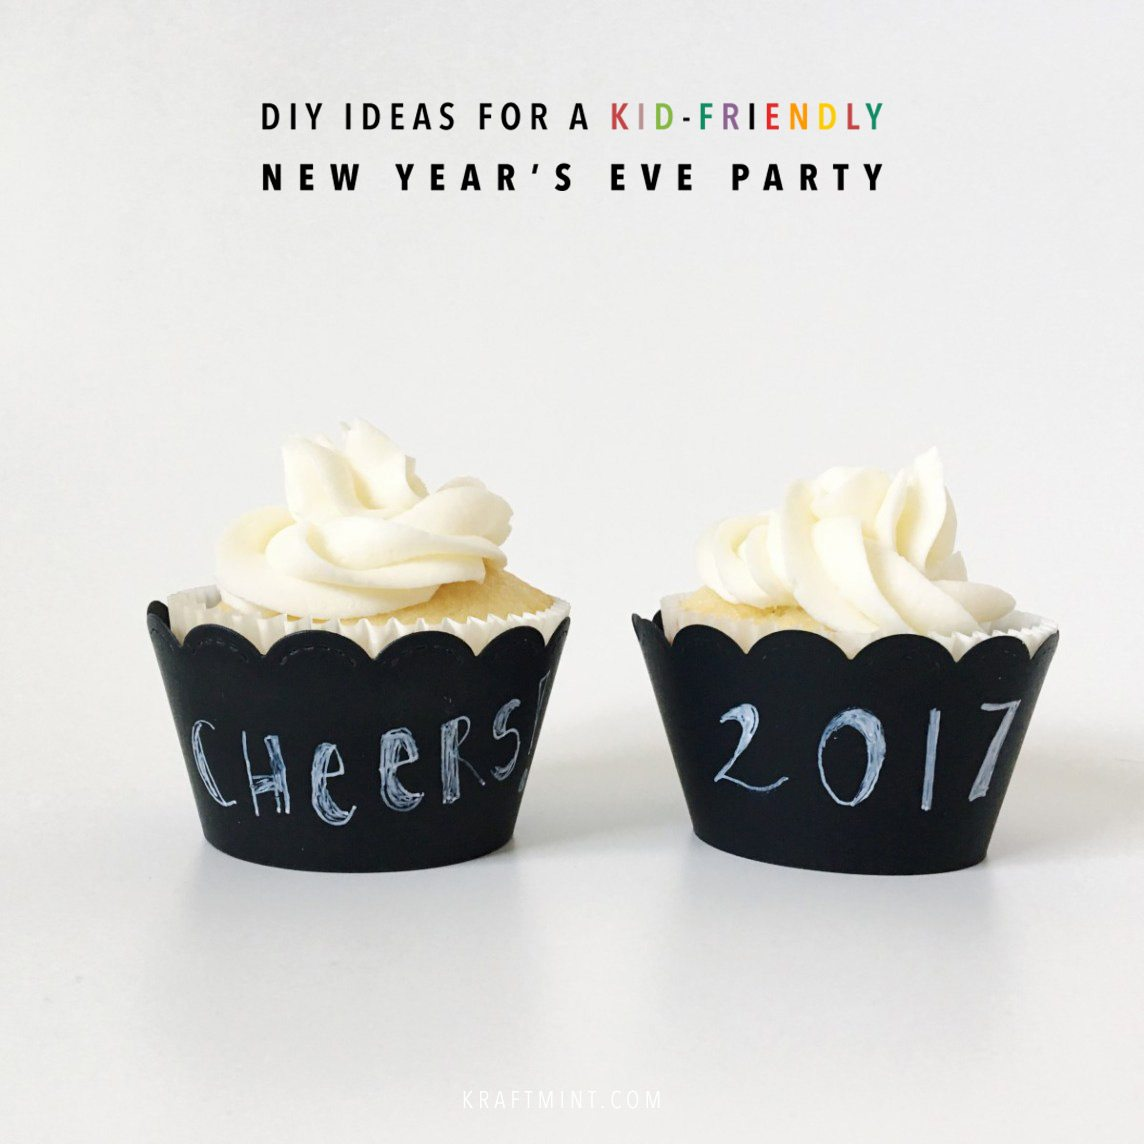 DIY ideas to host a kid friendly New Year's eve party